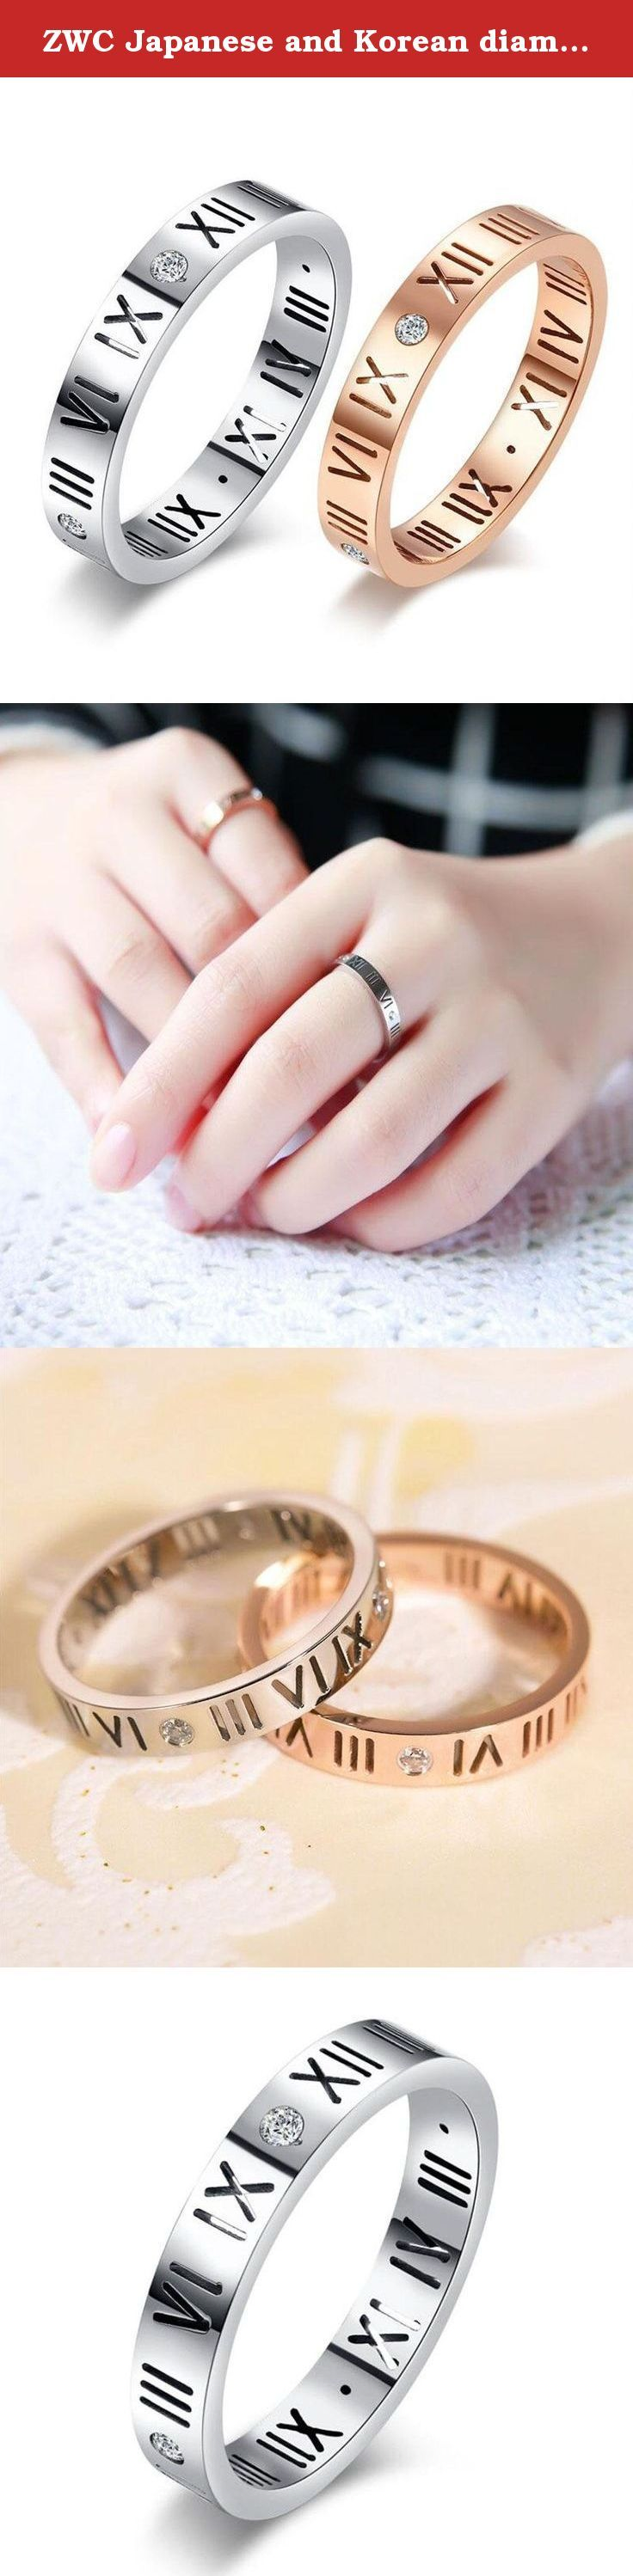 ZWC Japanese and Korean diamond-lucky number rings Roman numerals of titanium steel Rings Titanium steel couple ring , silver , 7. Material: Titanium Style: Korean version Style: letter/number Process: diamond For gift-giving occasions: birthday Color: rose gold, silver Size 5,6,7,8,9,10 Applying gender: Unisex Quantity 1pc.